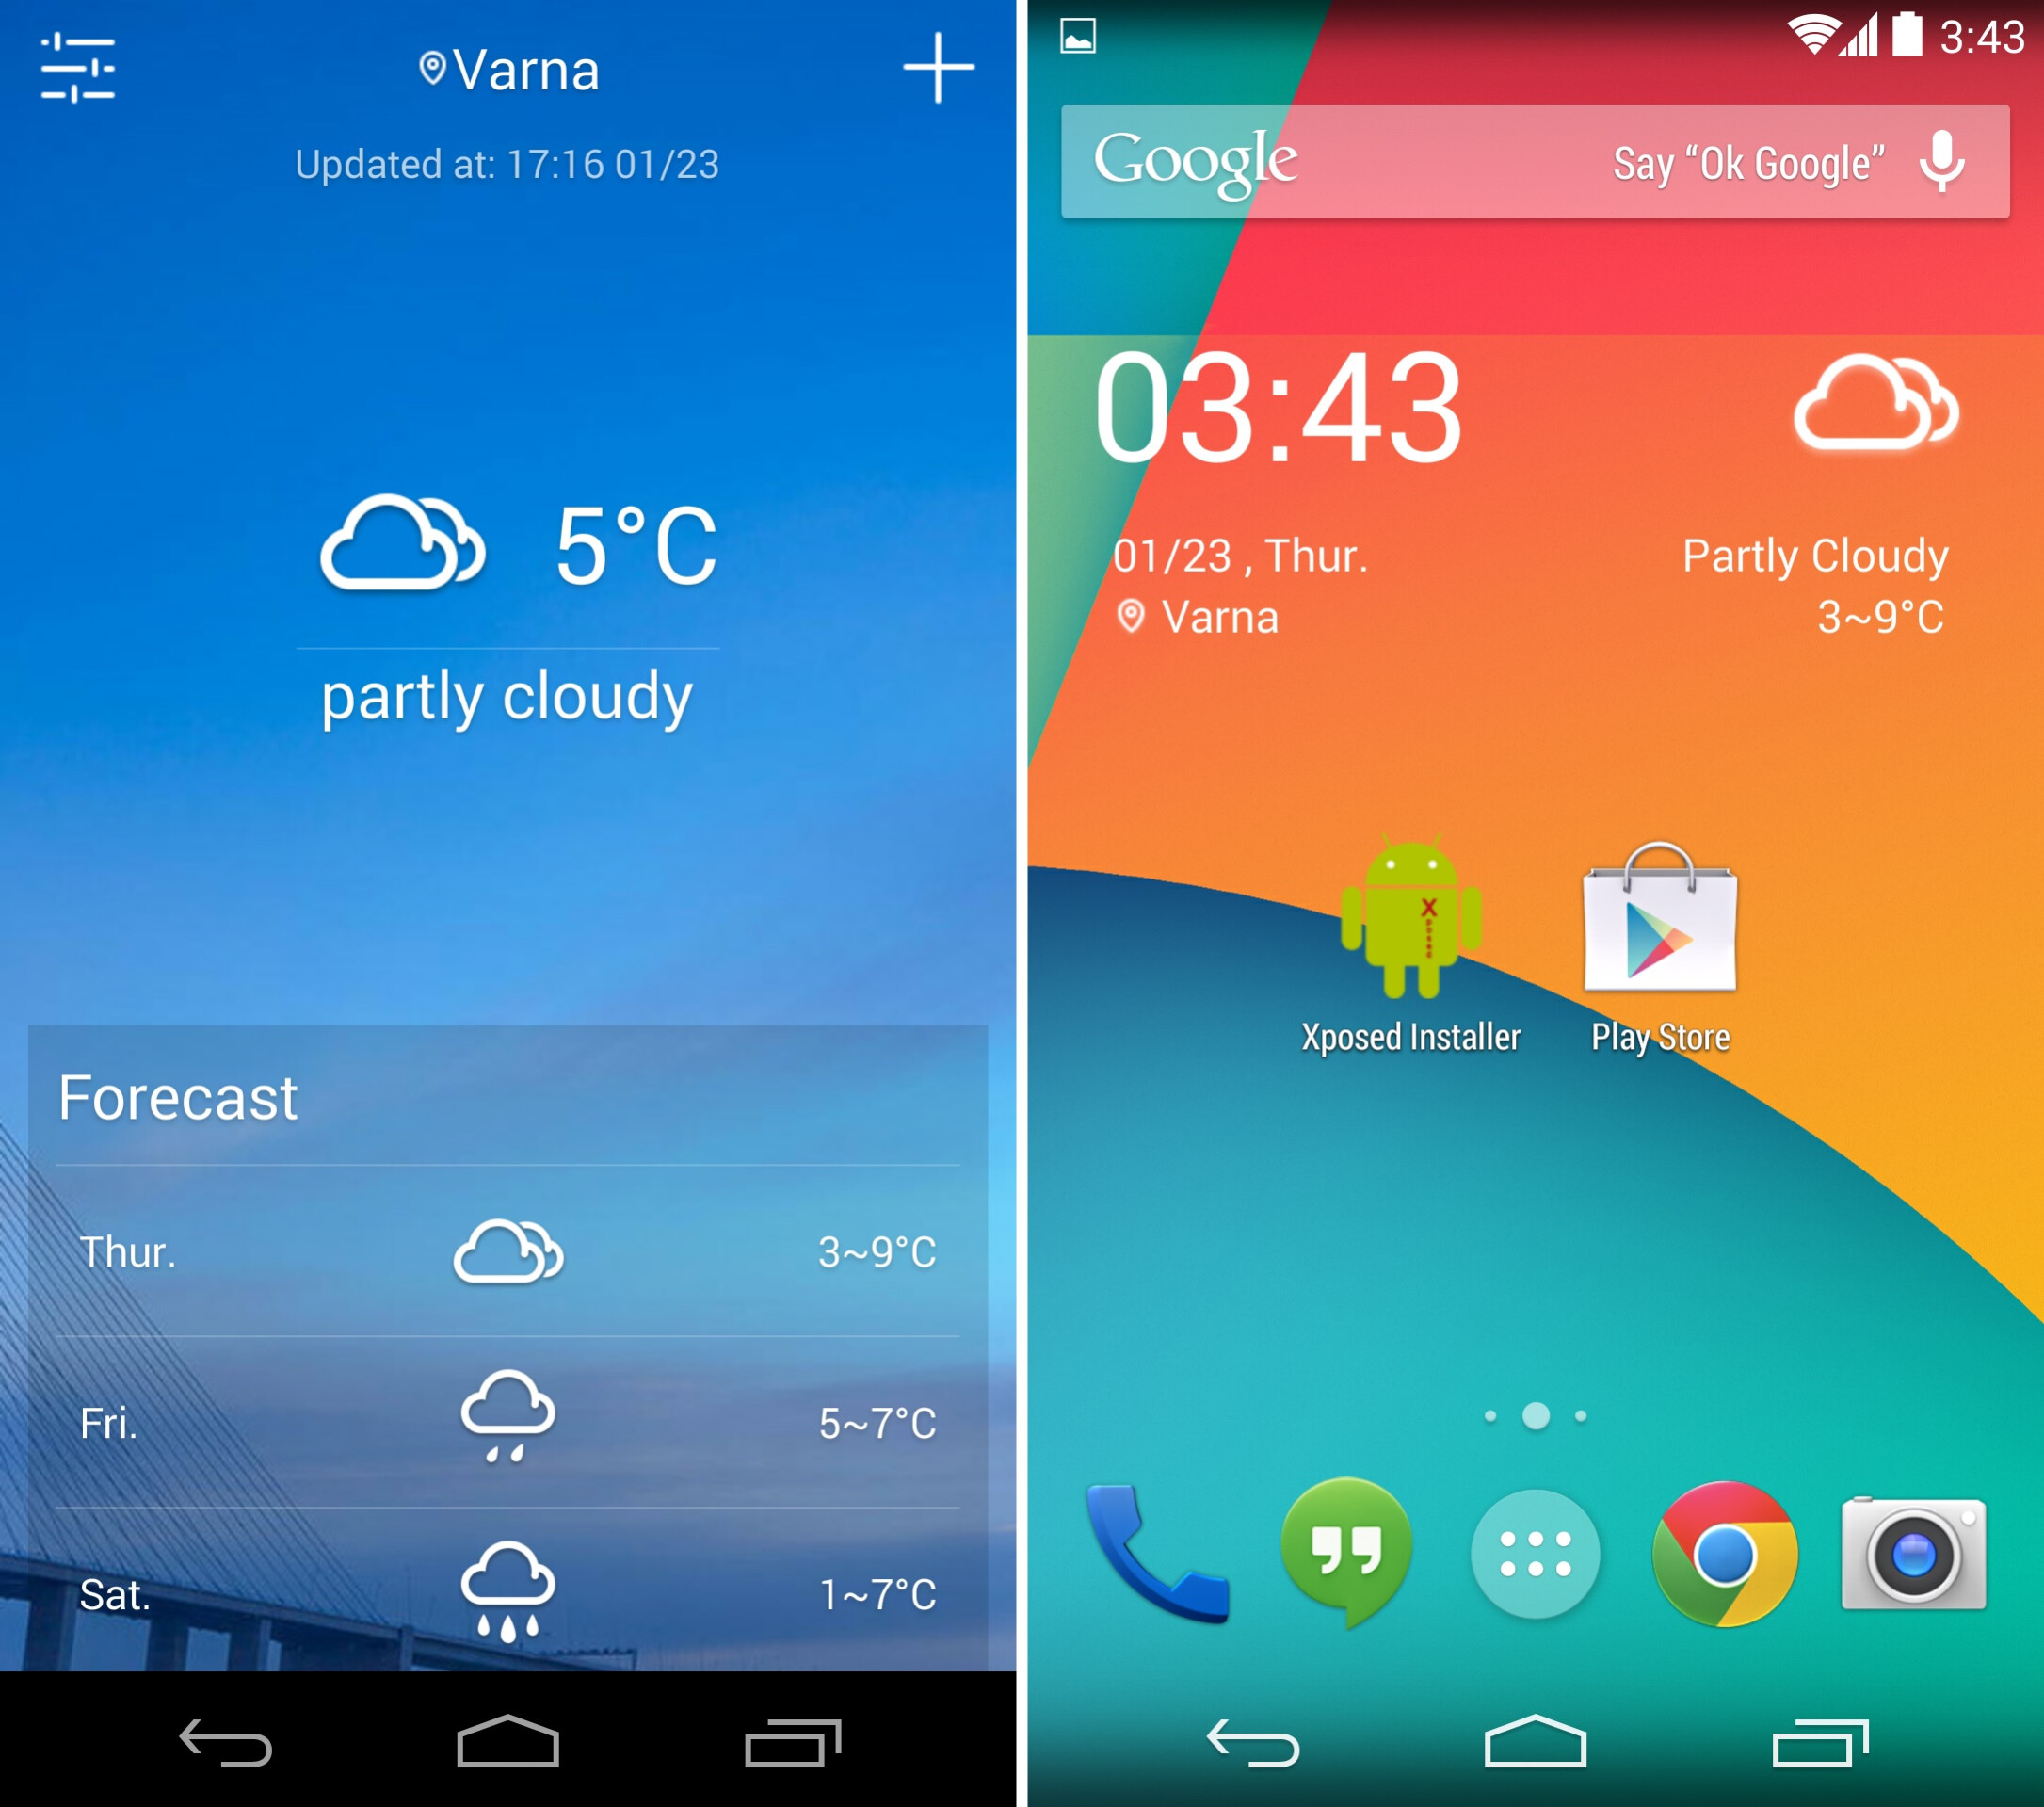 The 20 best weather widgets you should check out - PhoneArena